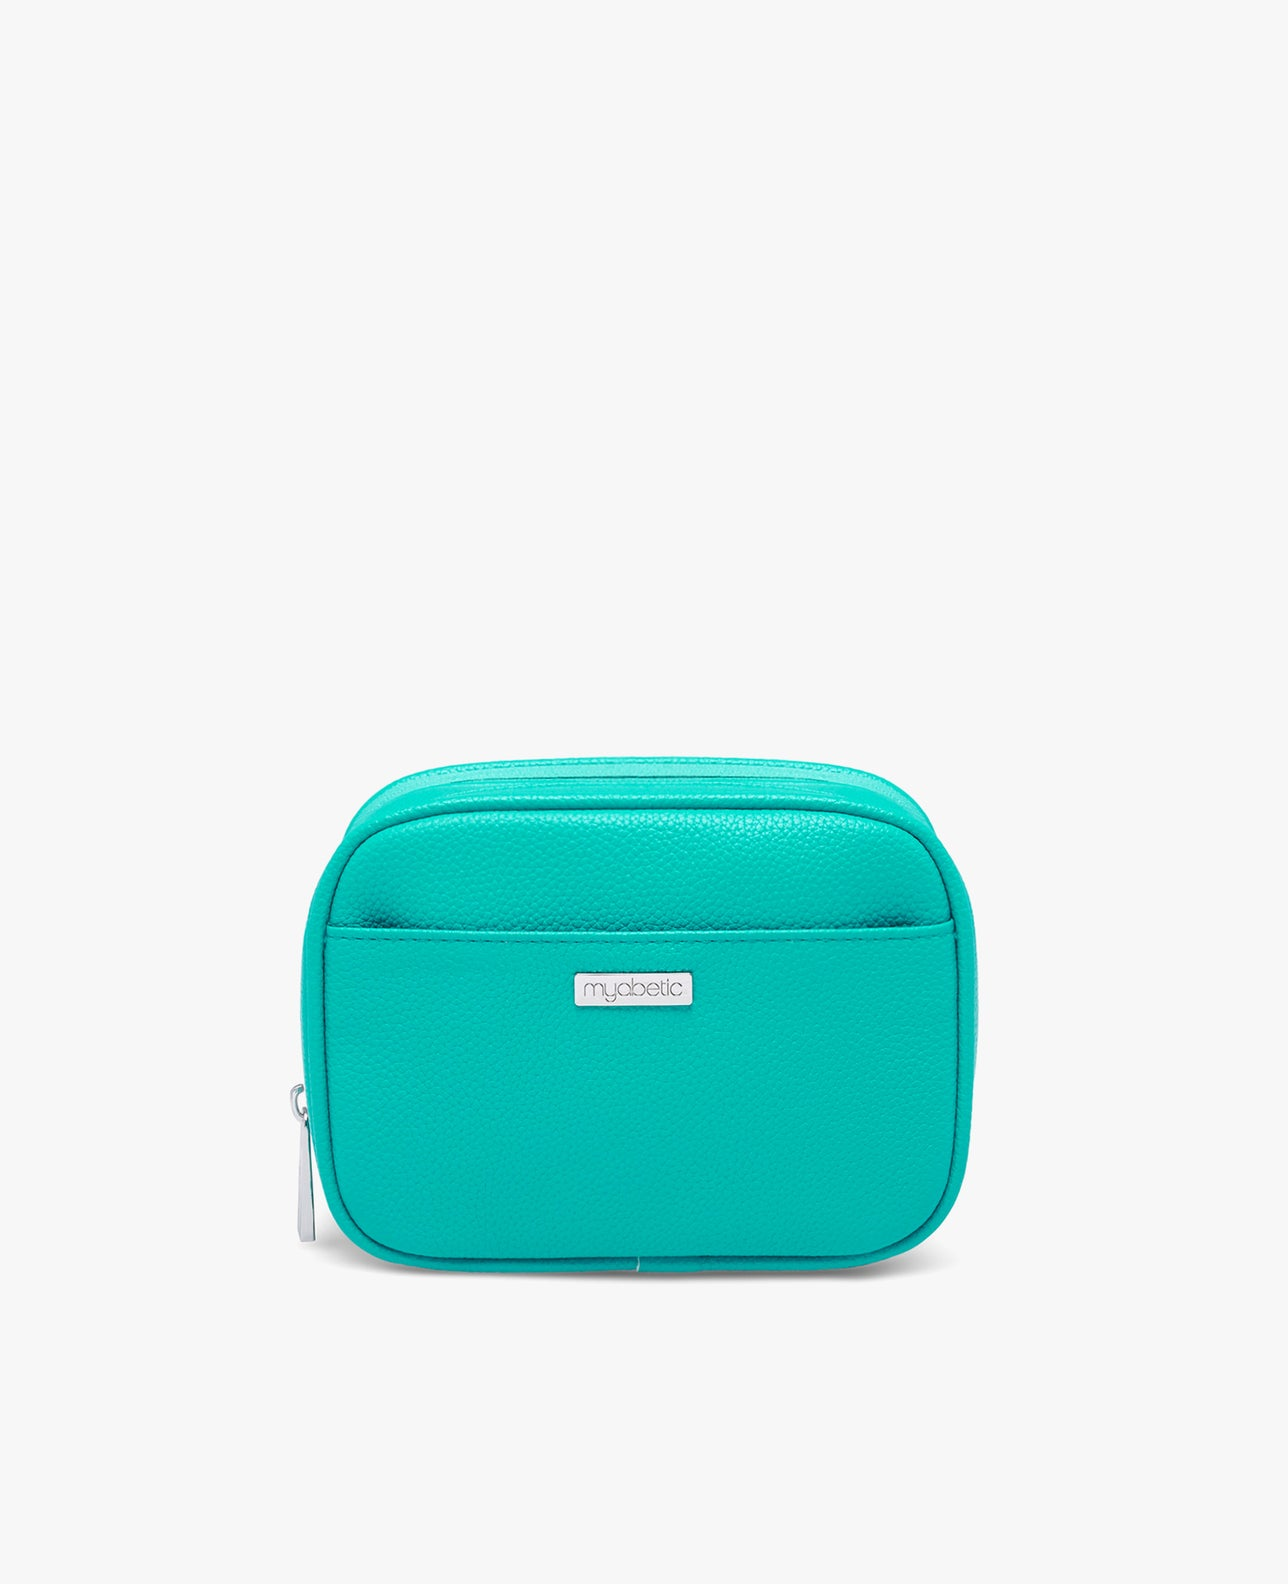 color:turquoise green